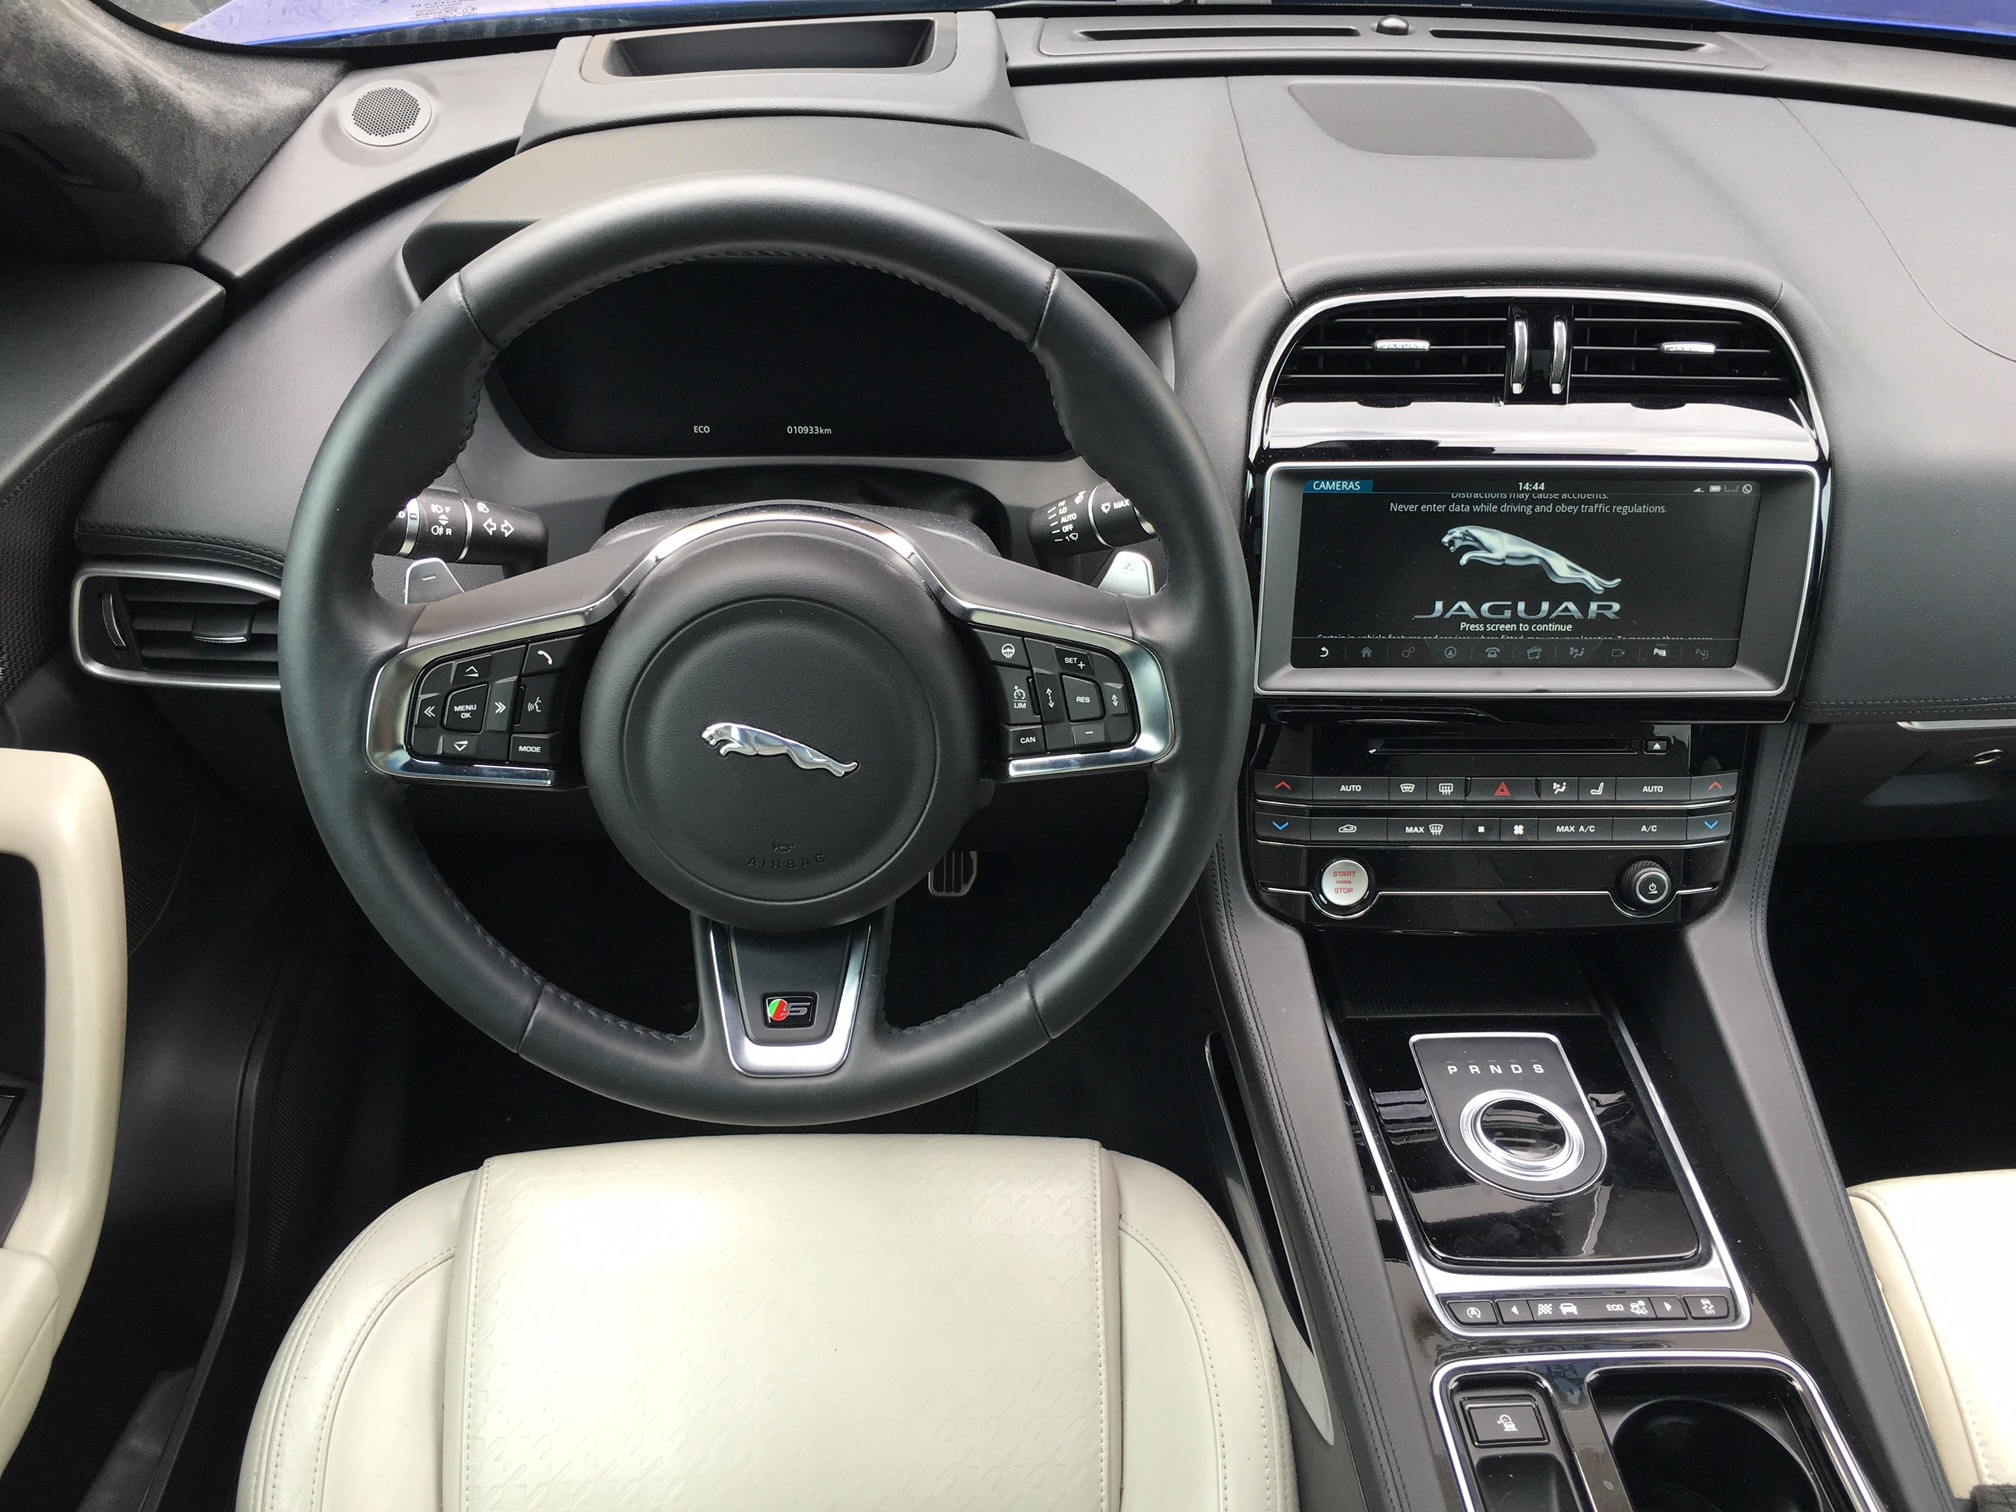 2016 Ram 1500 Sport >> 2016-jaguar-f-pace-interior | Canadian Car Reviews | Driving Television